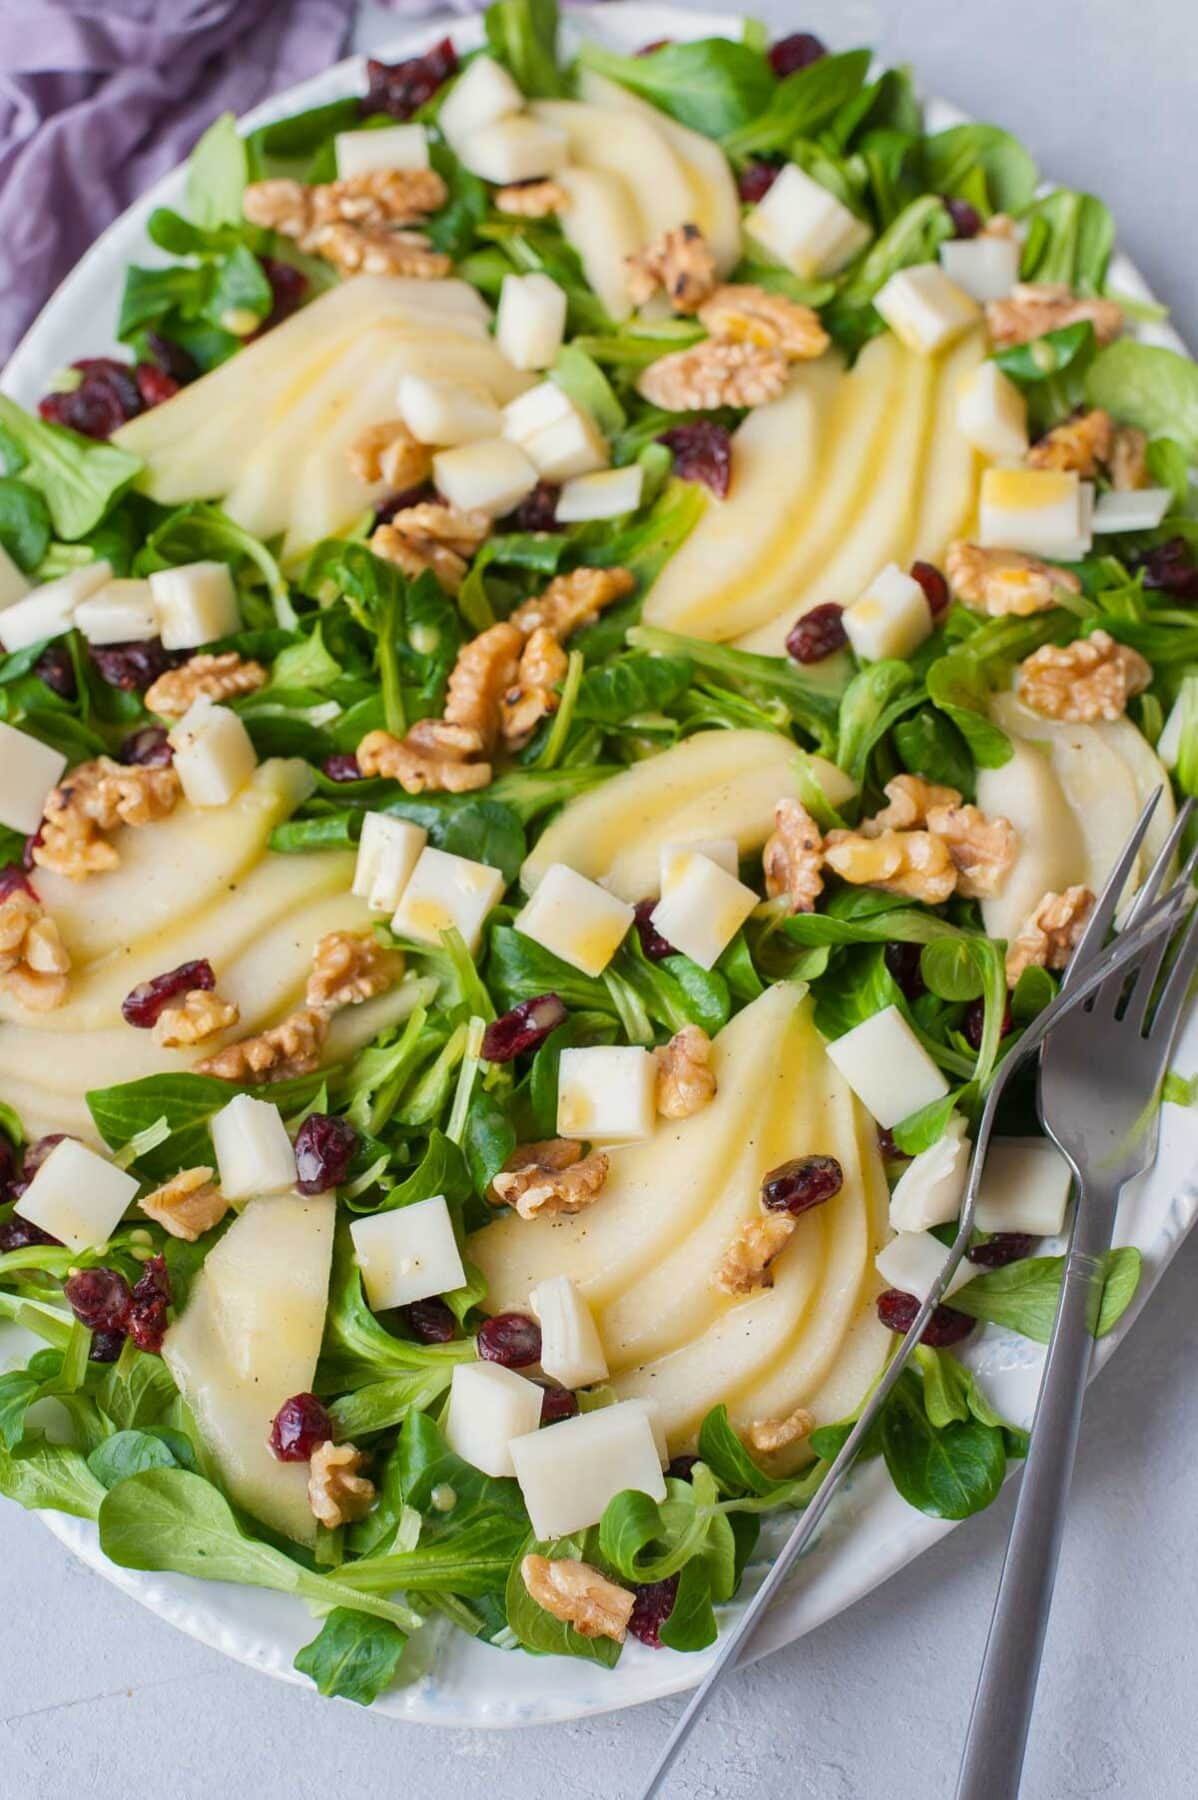 Pear walnut salad with cranberries and goat cheese on a white plate.